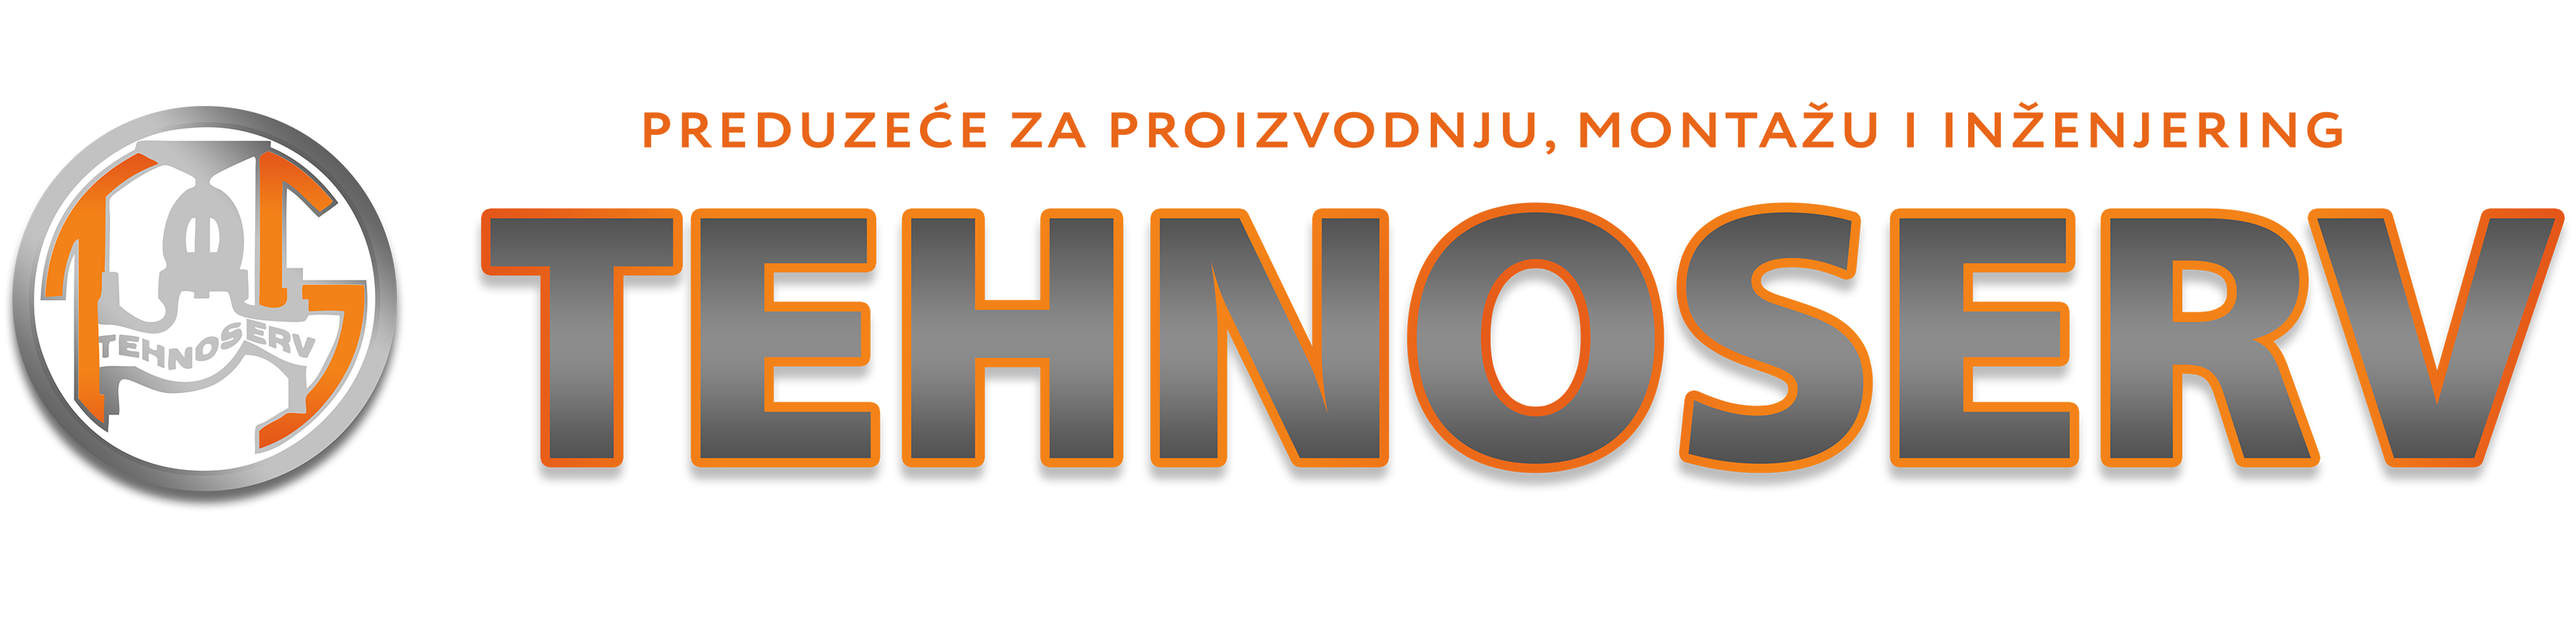 https://tehnoserv.rs/wp-content/uploads/2020/11/cropped-logo-2-1.png